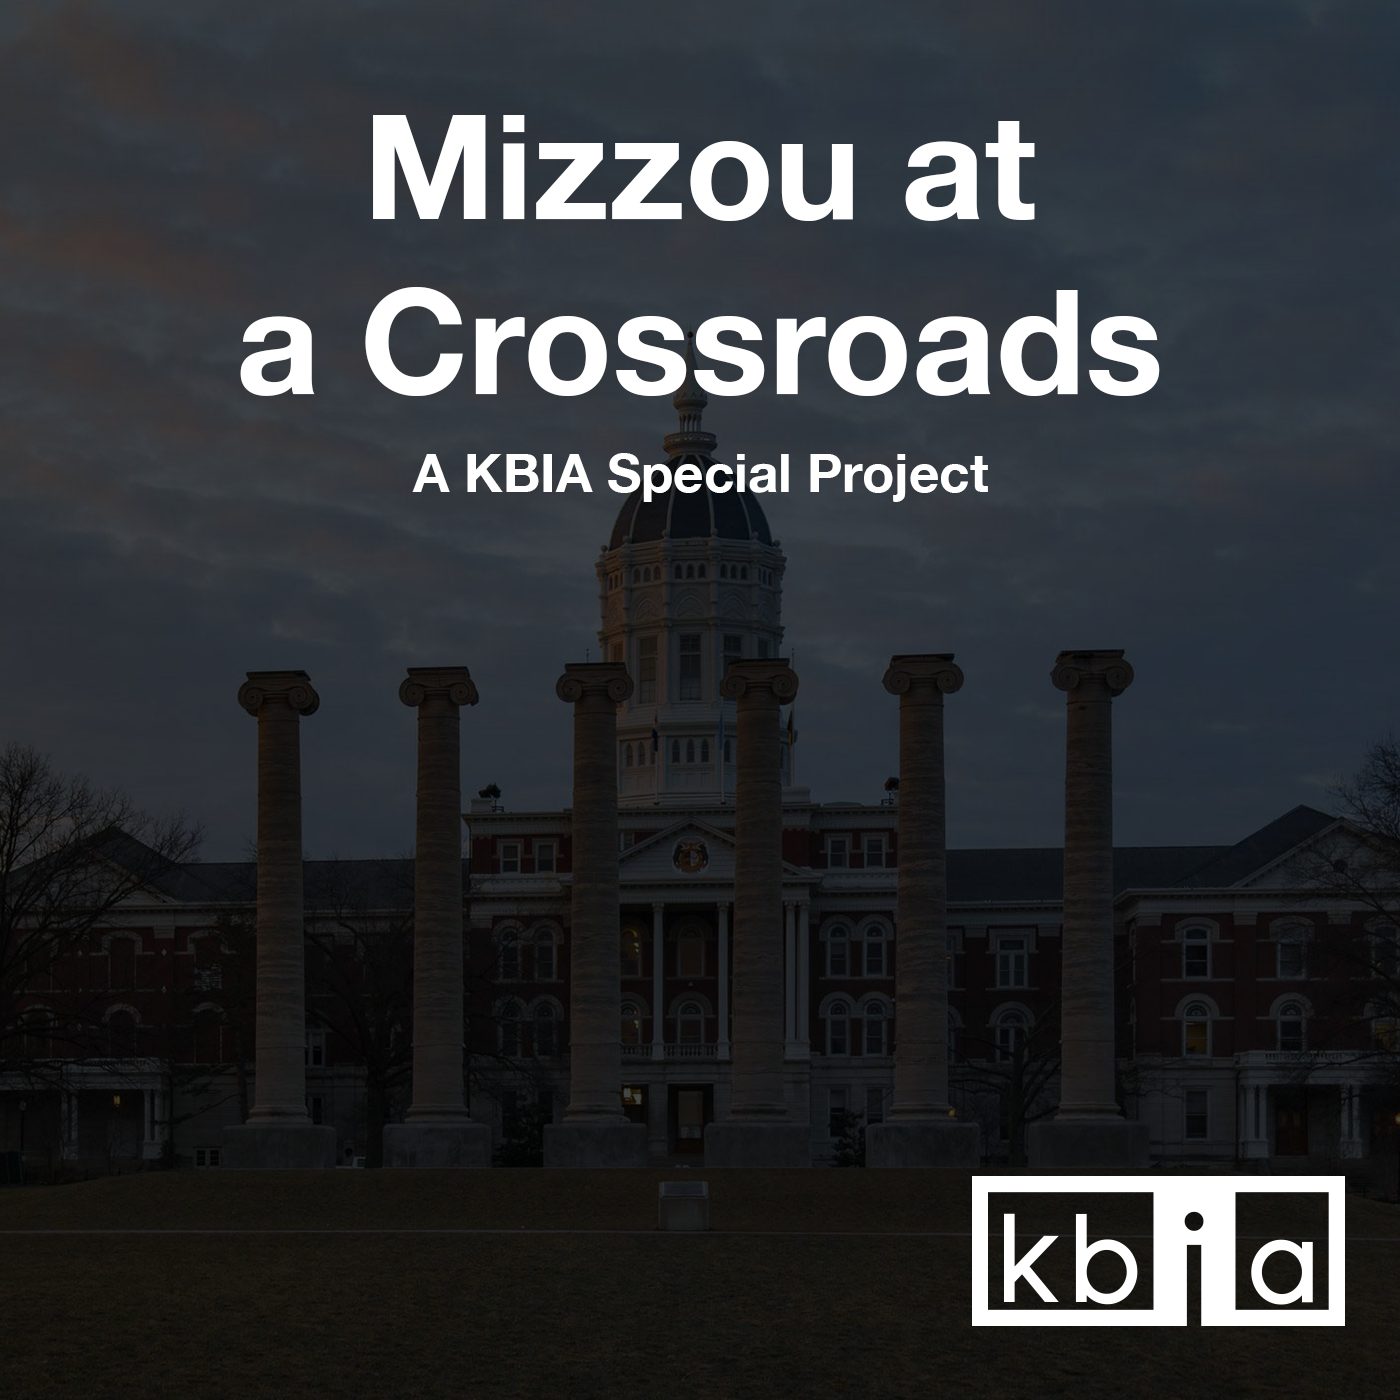 Mizzou at a Crossroads